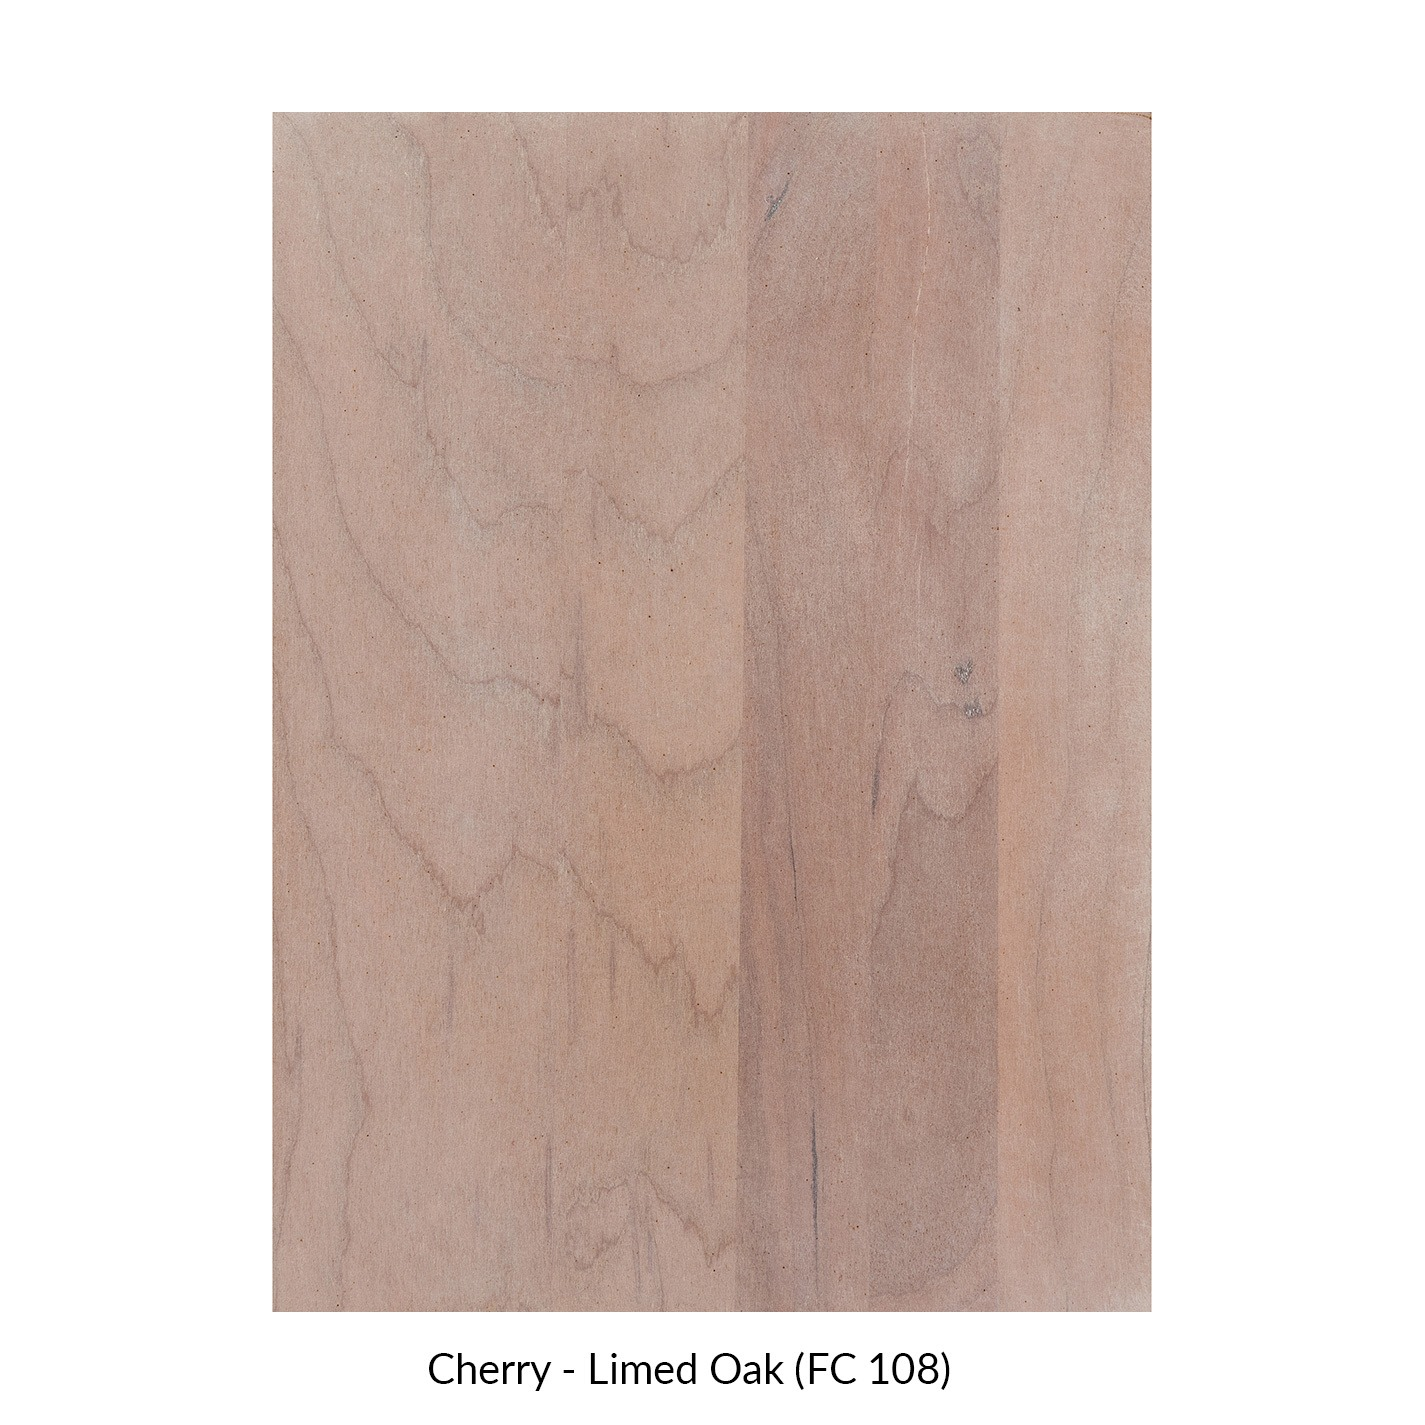 spectrum-cherry-limed-oak-fc-108.jpg